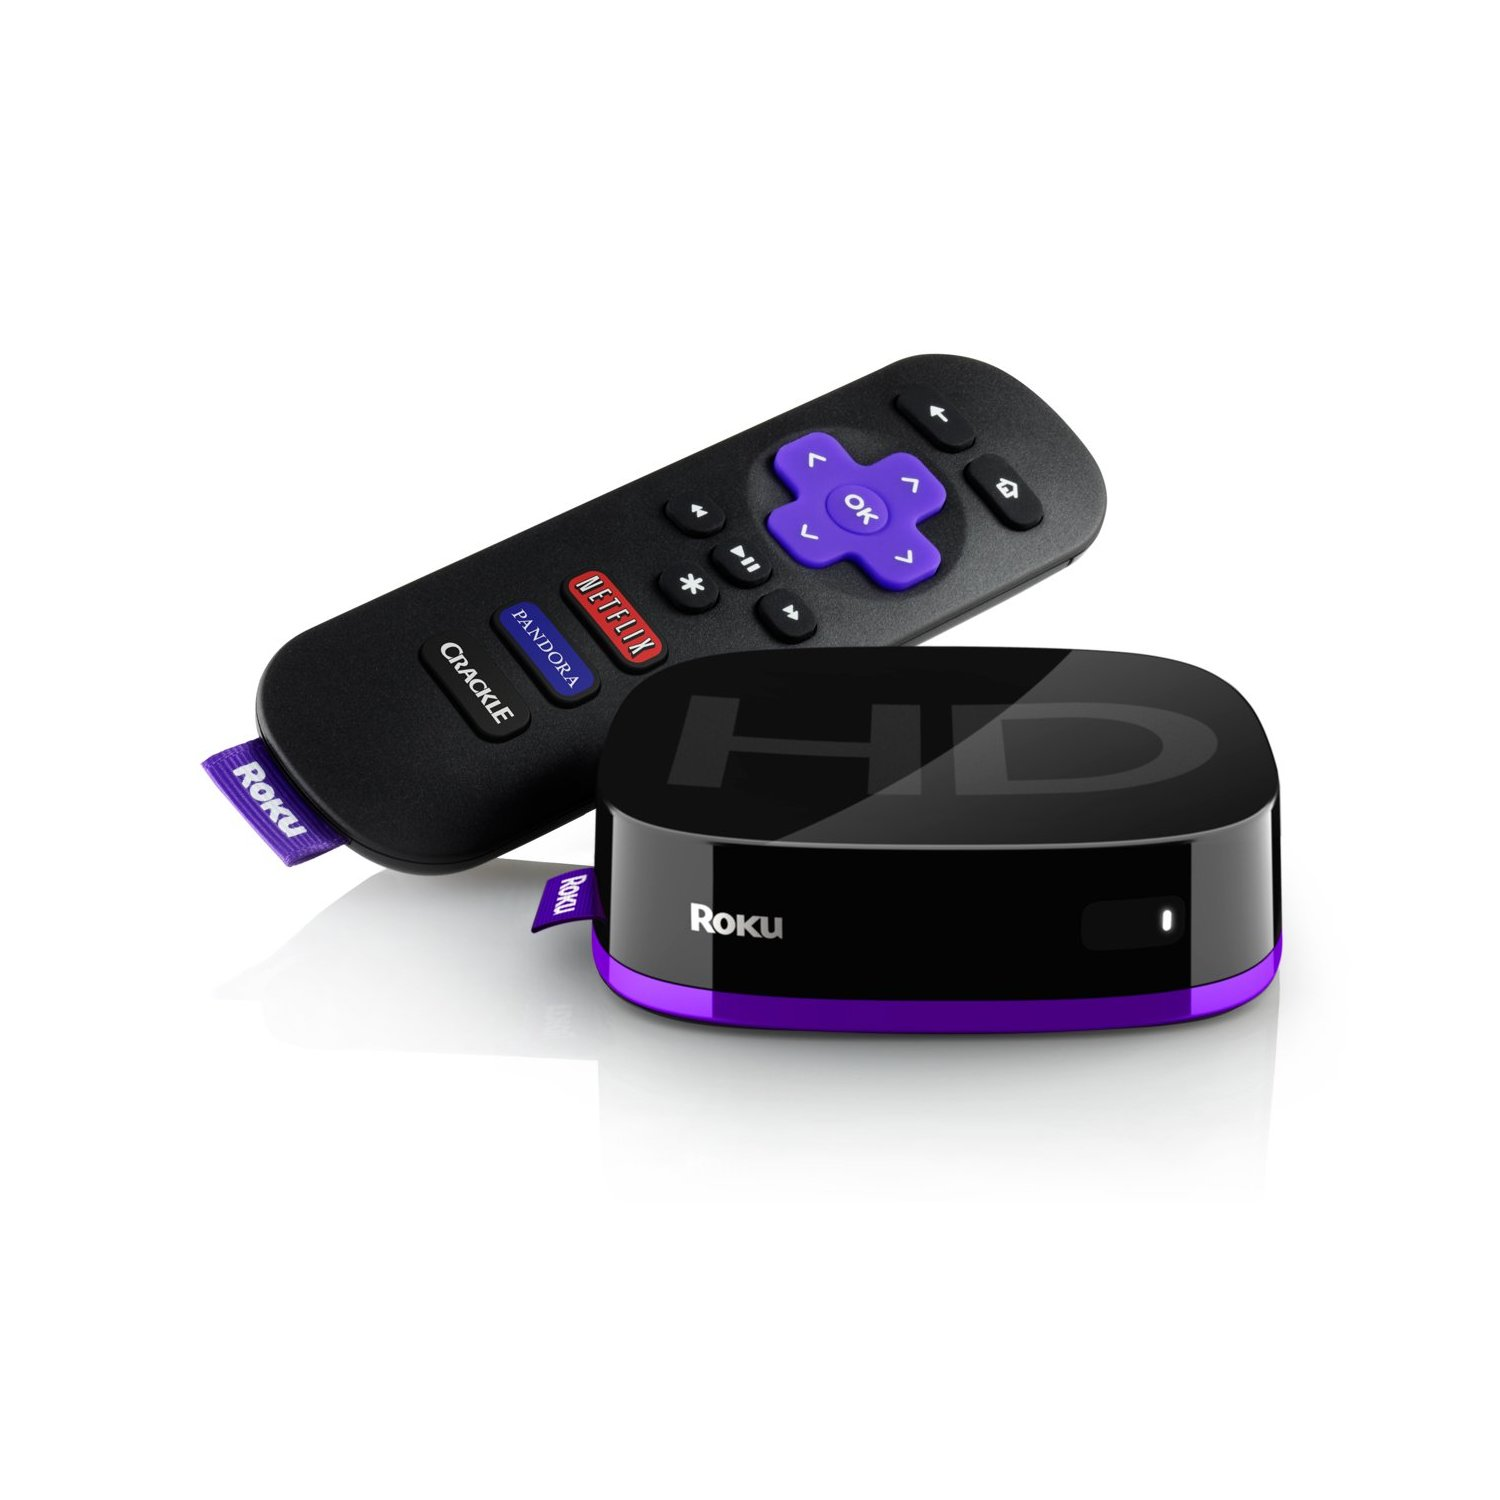 Roku Hd Wii Keeps Losing Wifi Connection